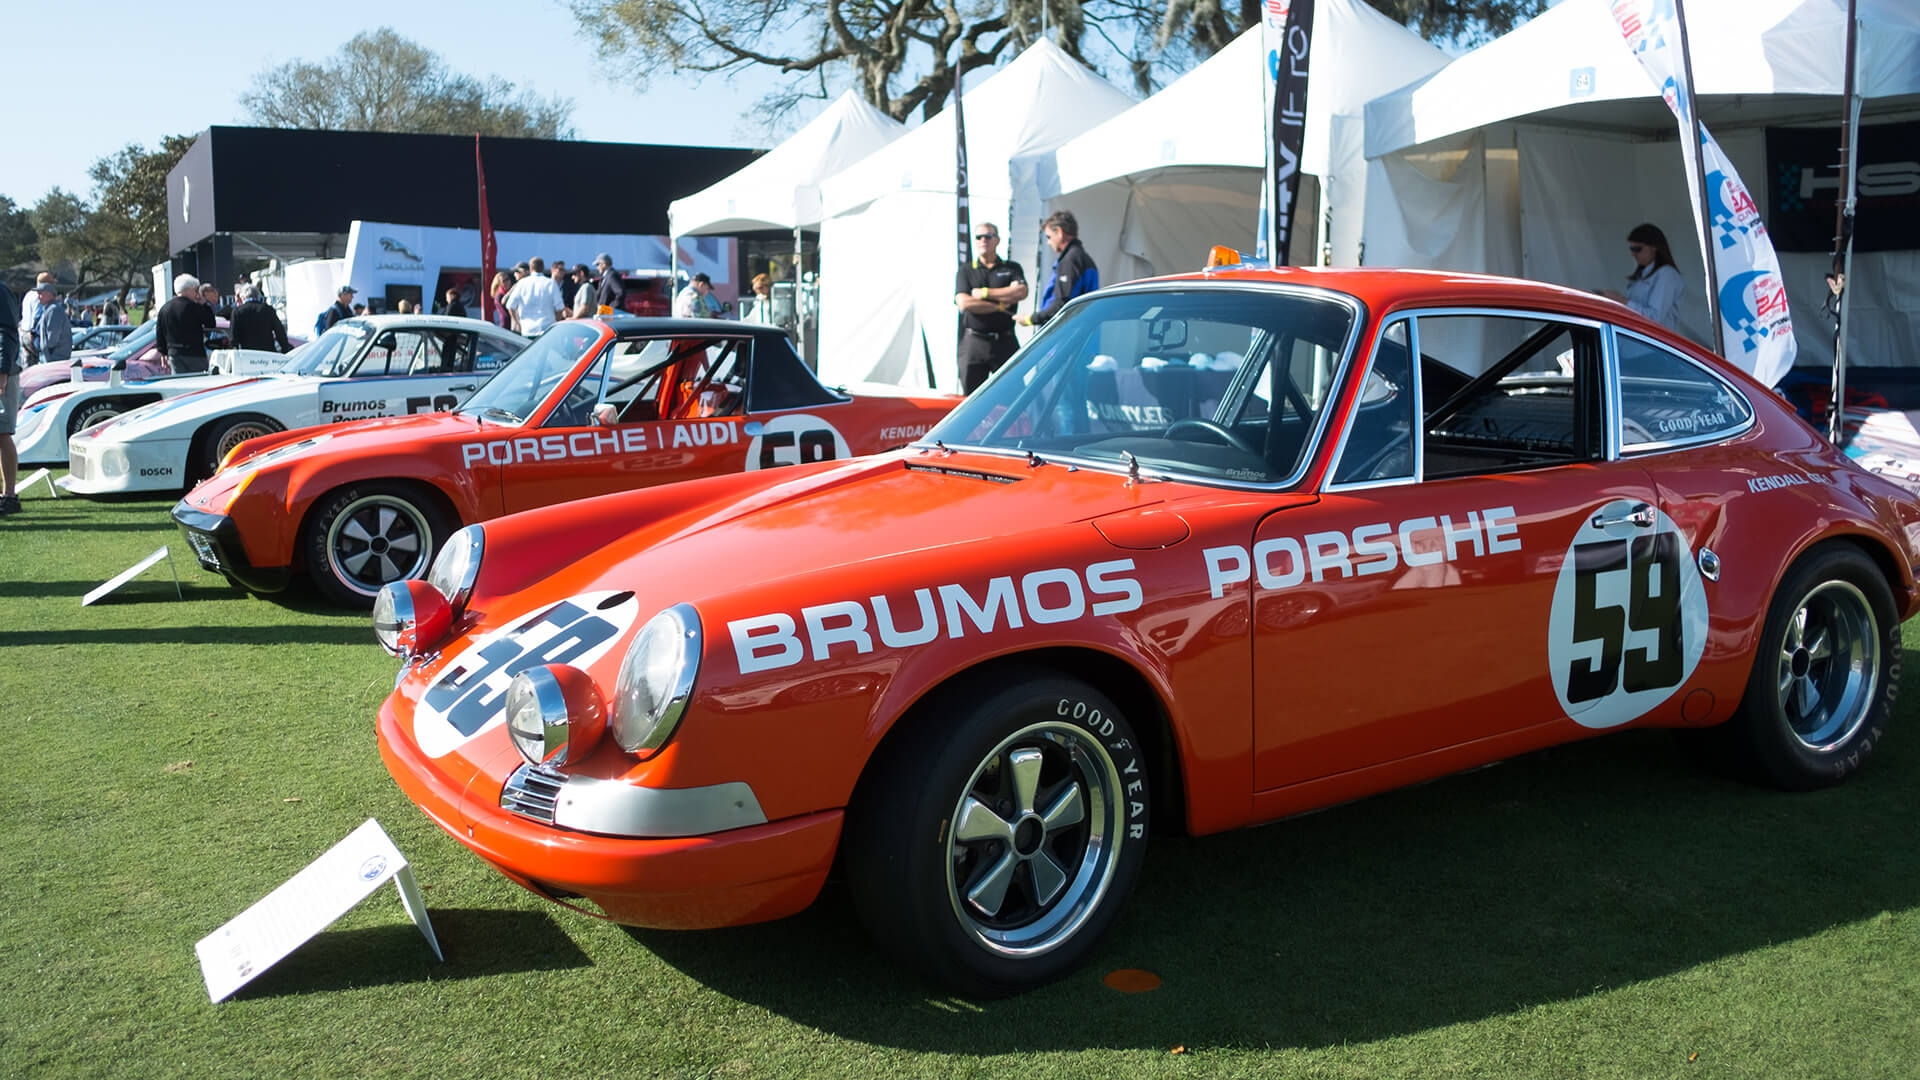 Bad weather forces Amelia Island Concours to move to Saturday